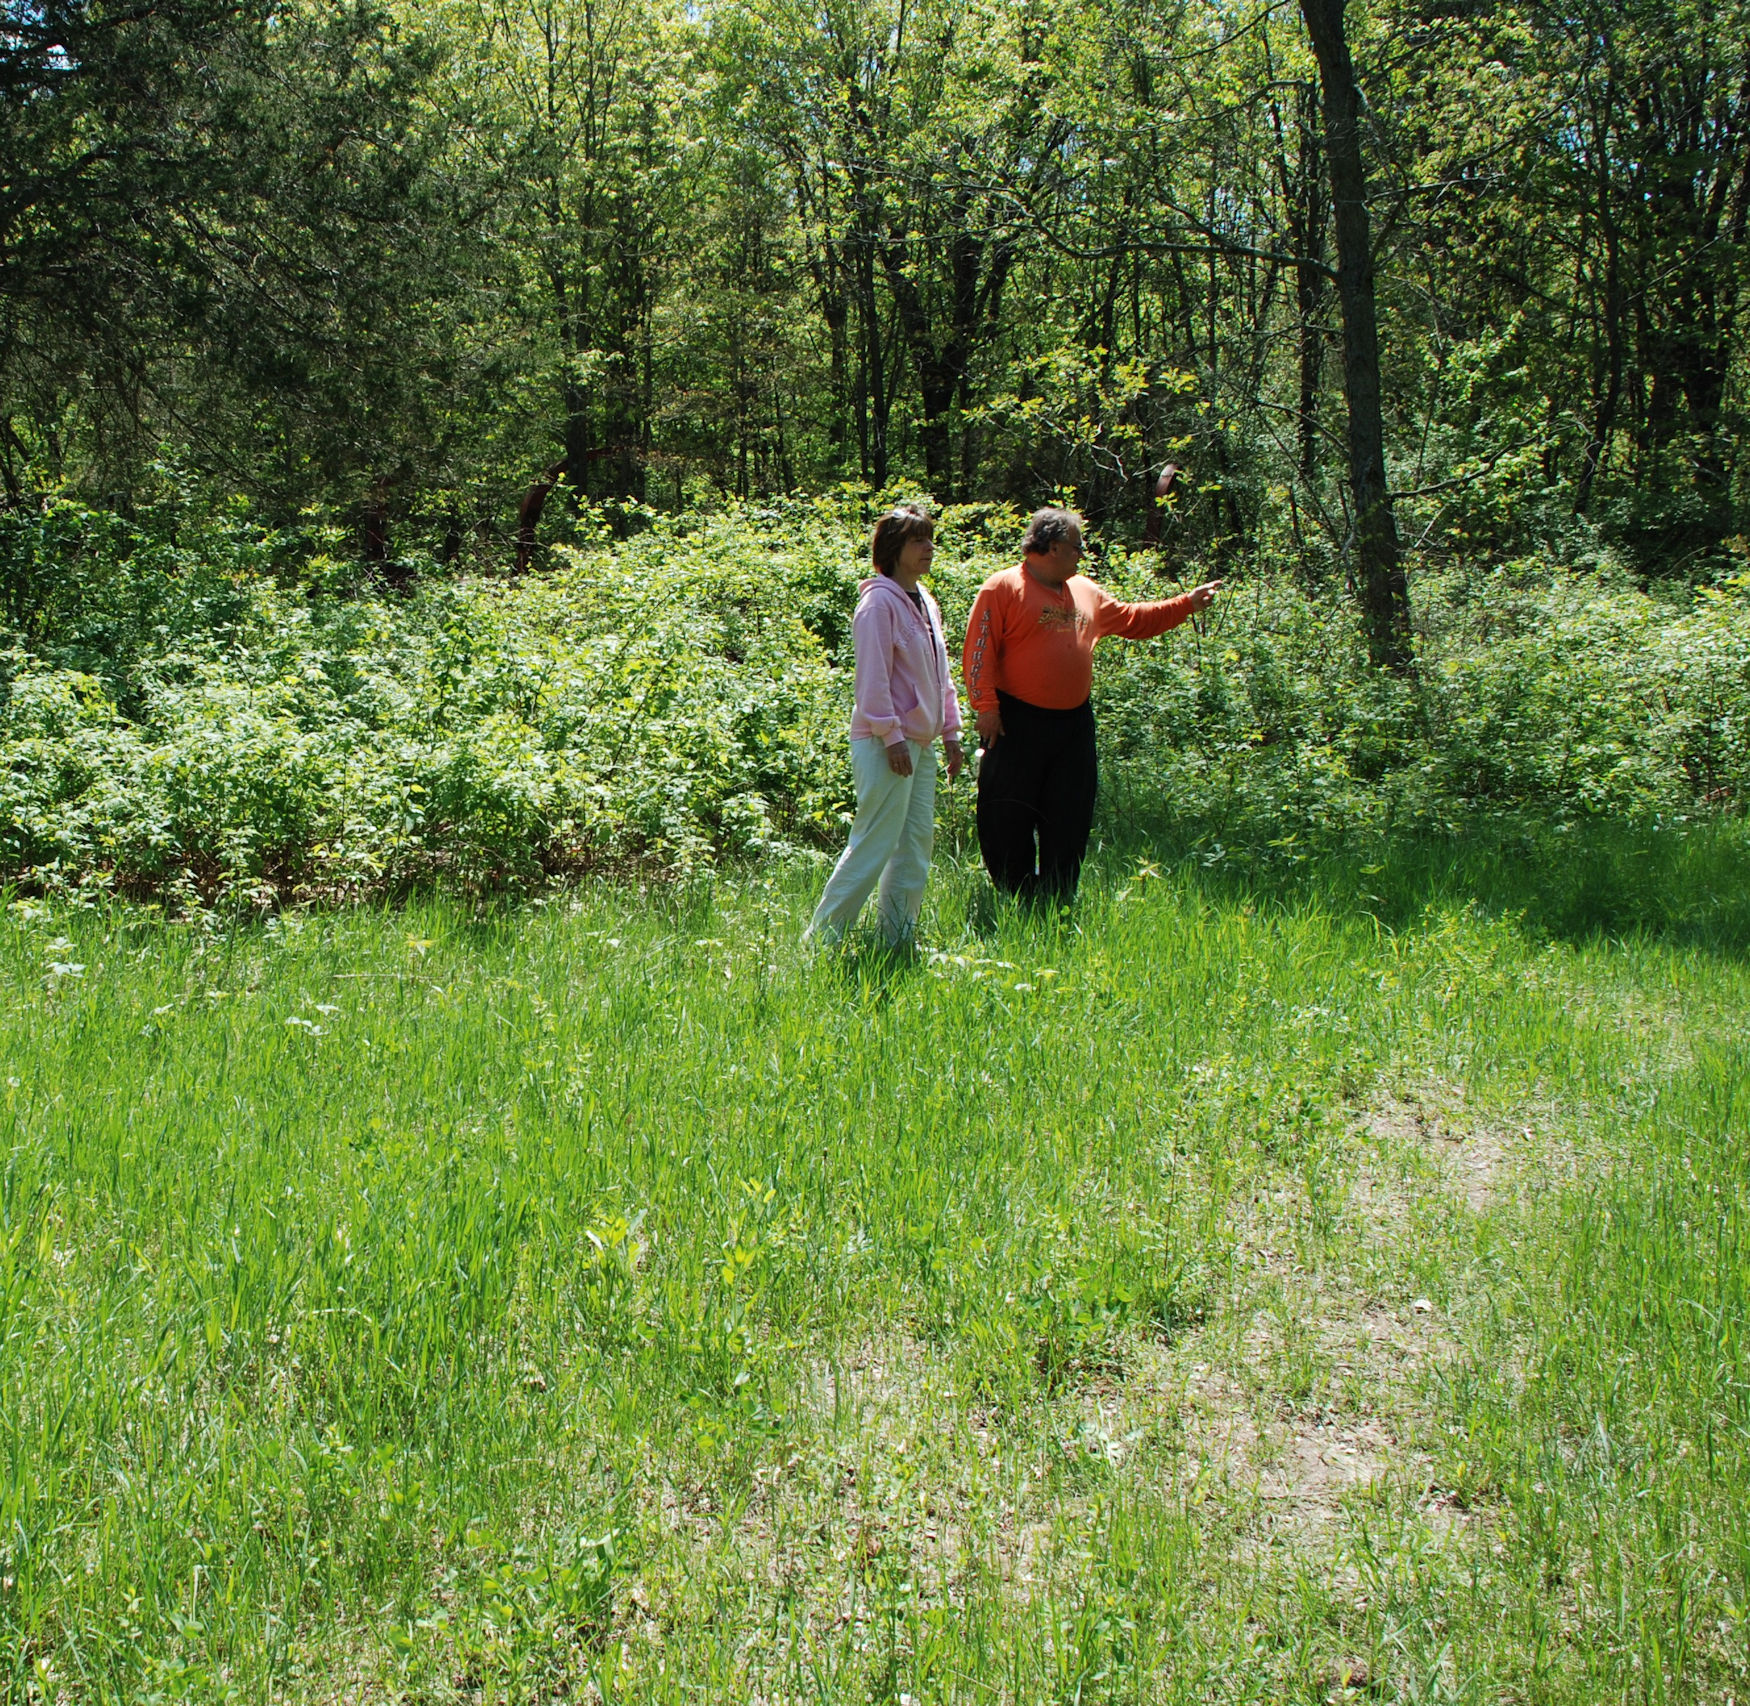 Bev Vaillancourt and Jay Toth, then Archeologist for the Ho-Chunk Nation, discuss the possibility of this being the original location of Yellow Thunder's village.